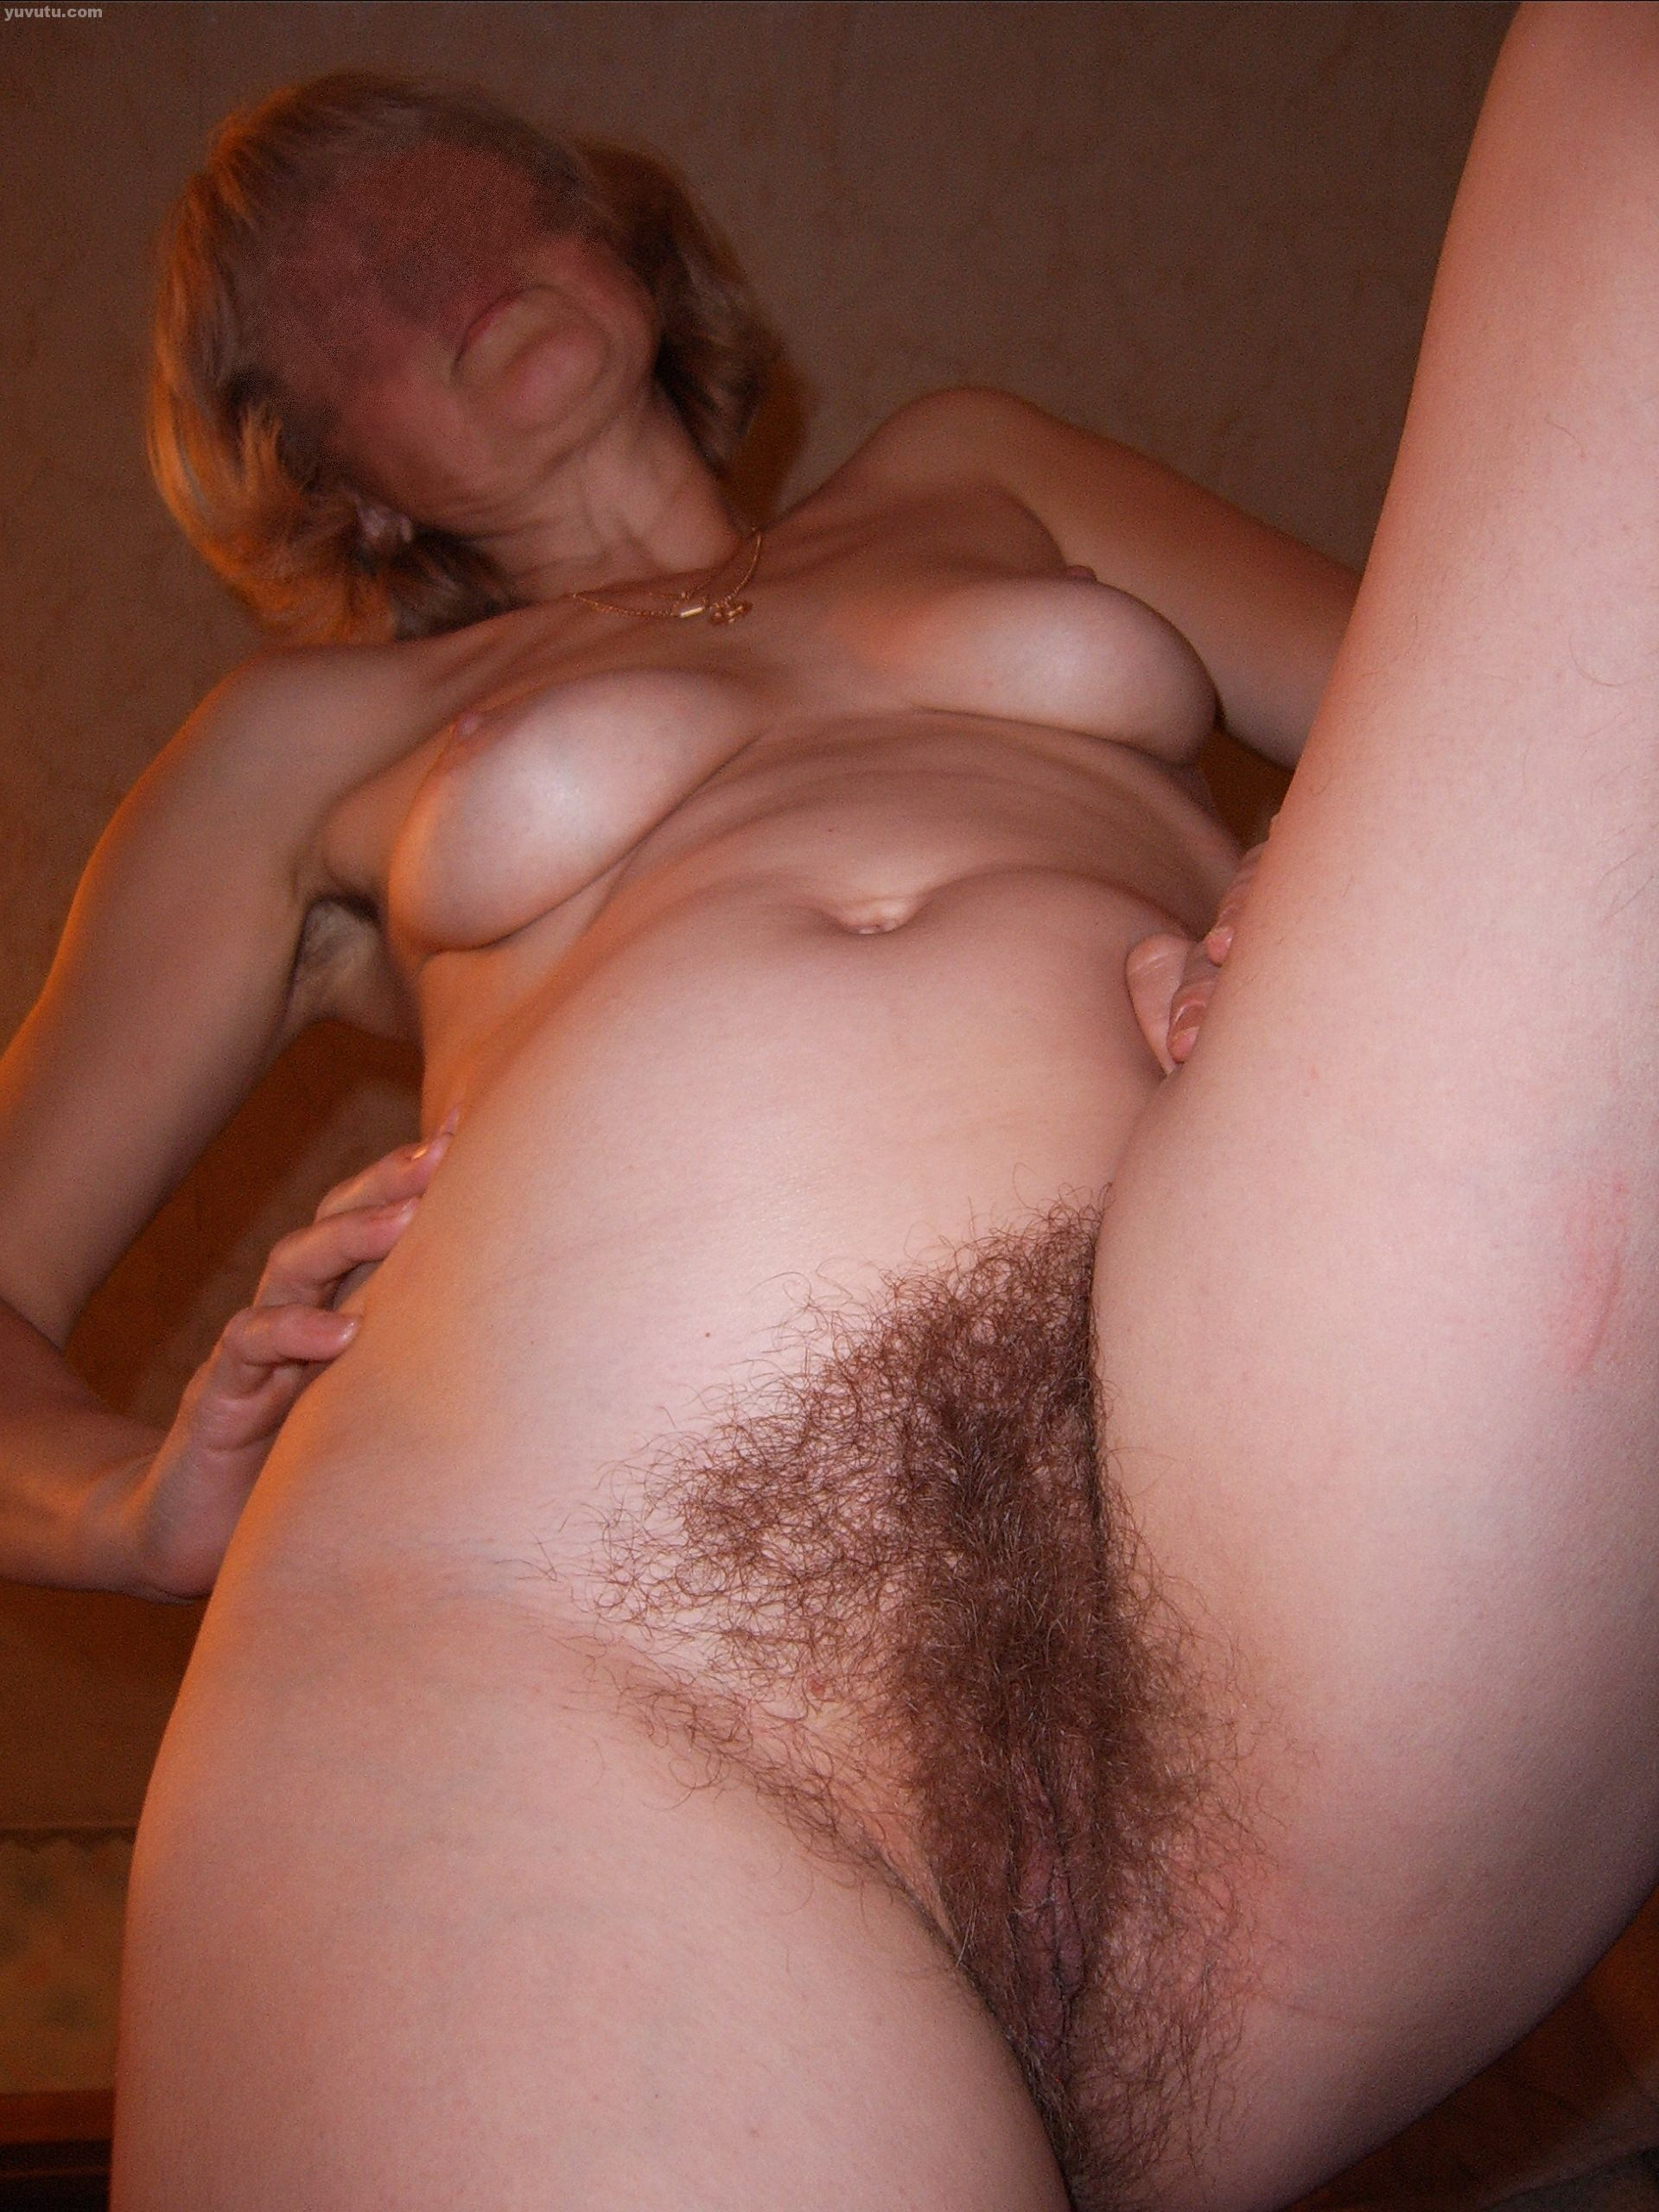 Fucking hairy housewife movie pussy